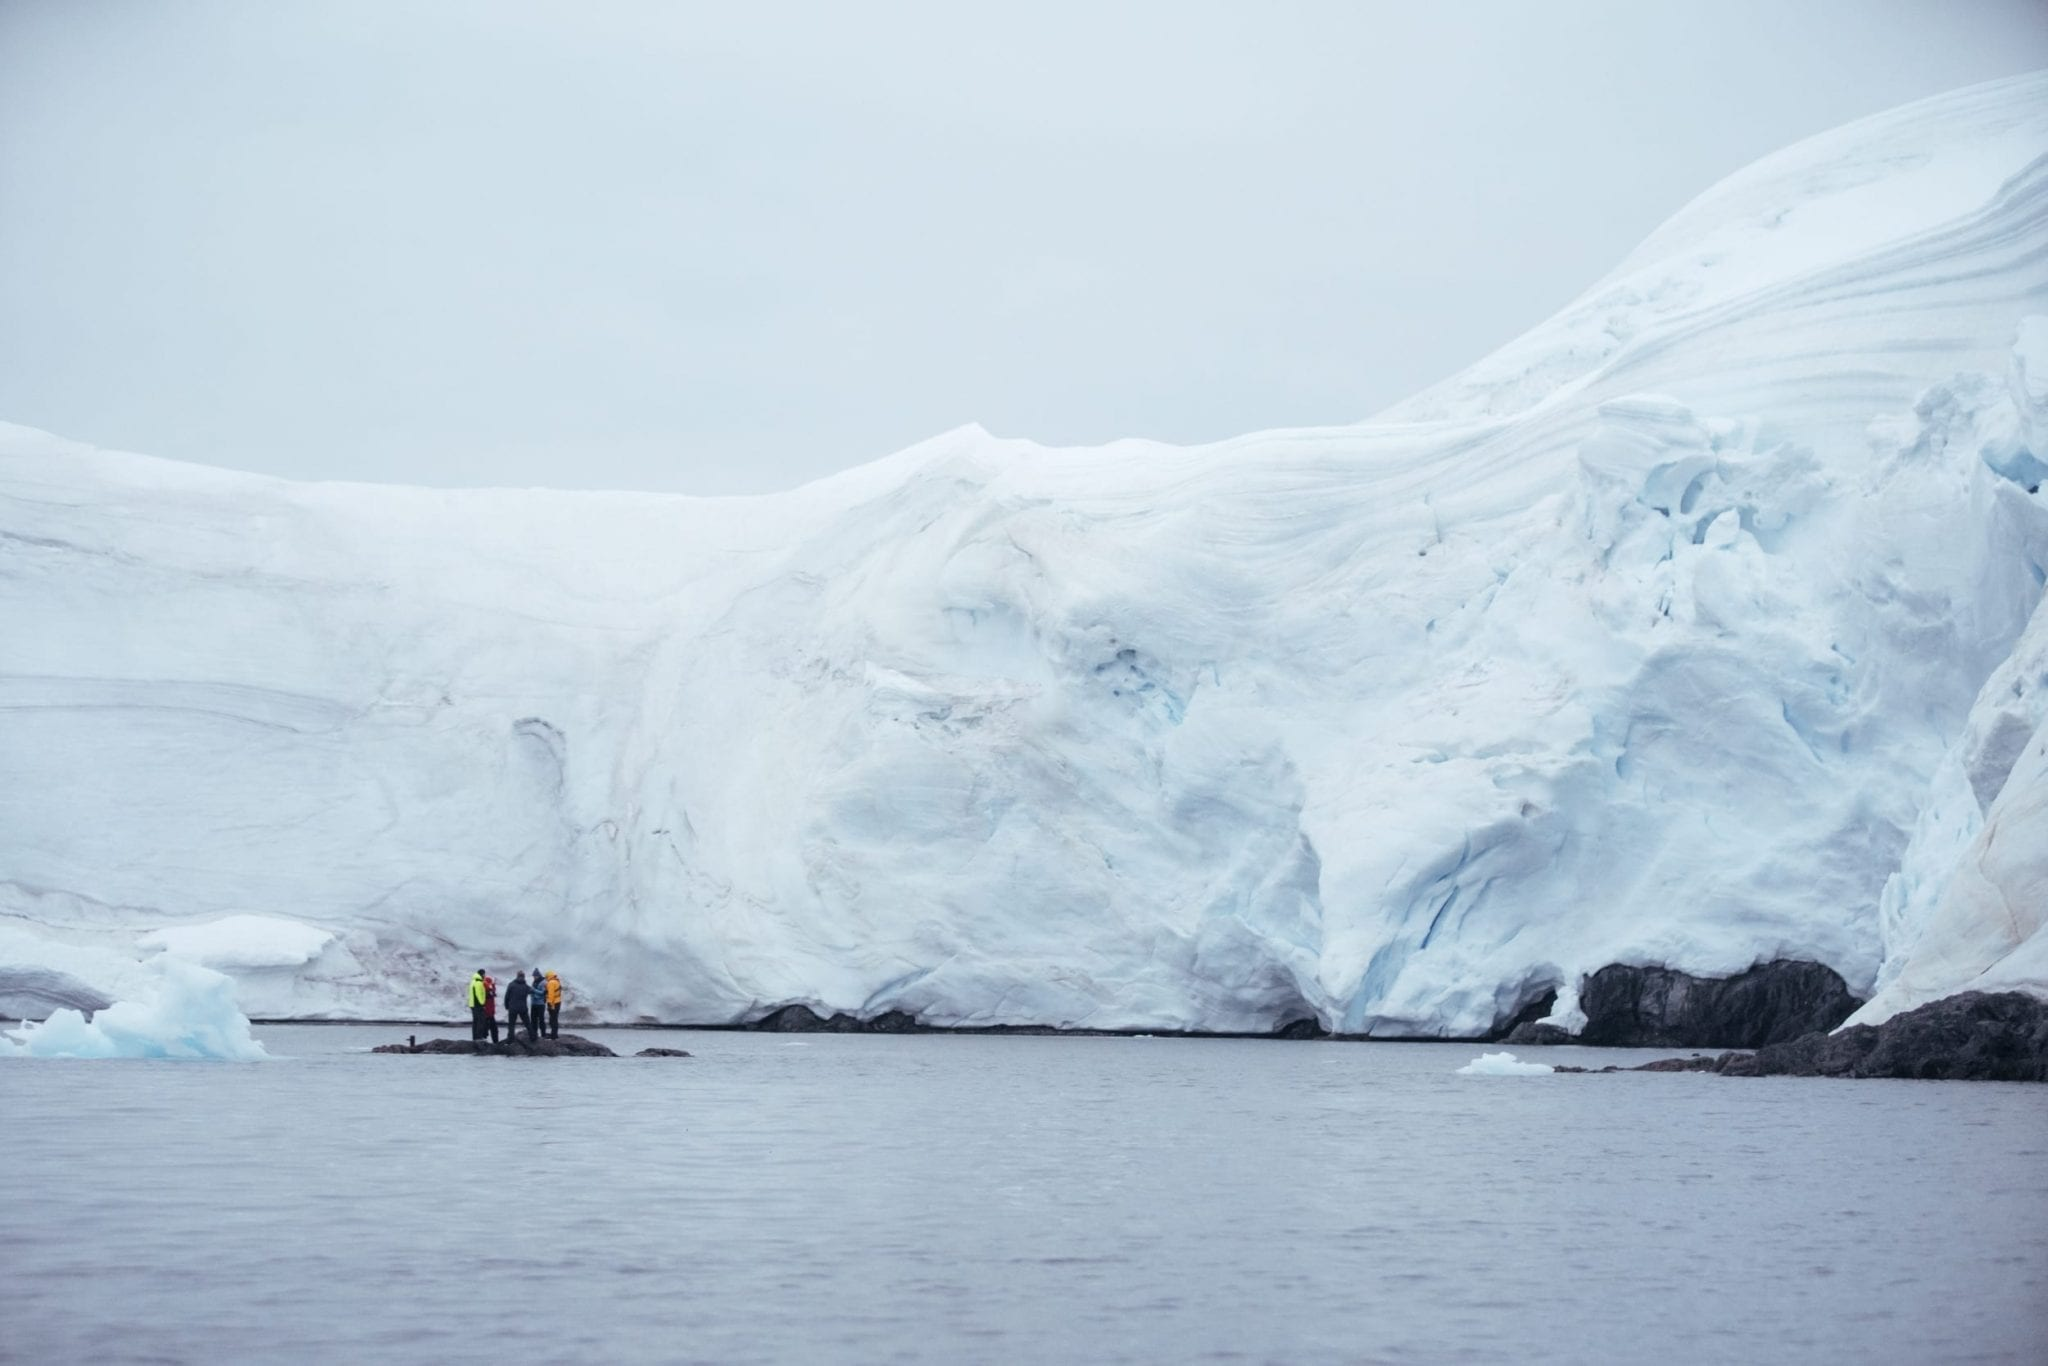 Research team on a small outcropping of land, looking up at the Antarctic ice sheet.